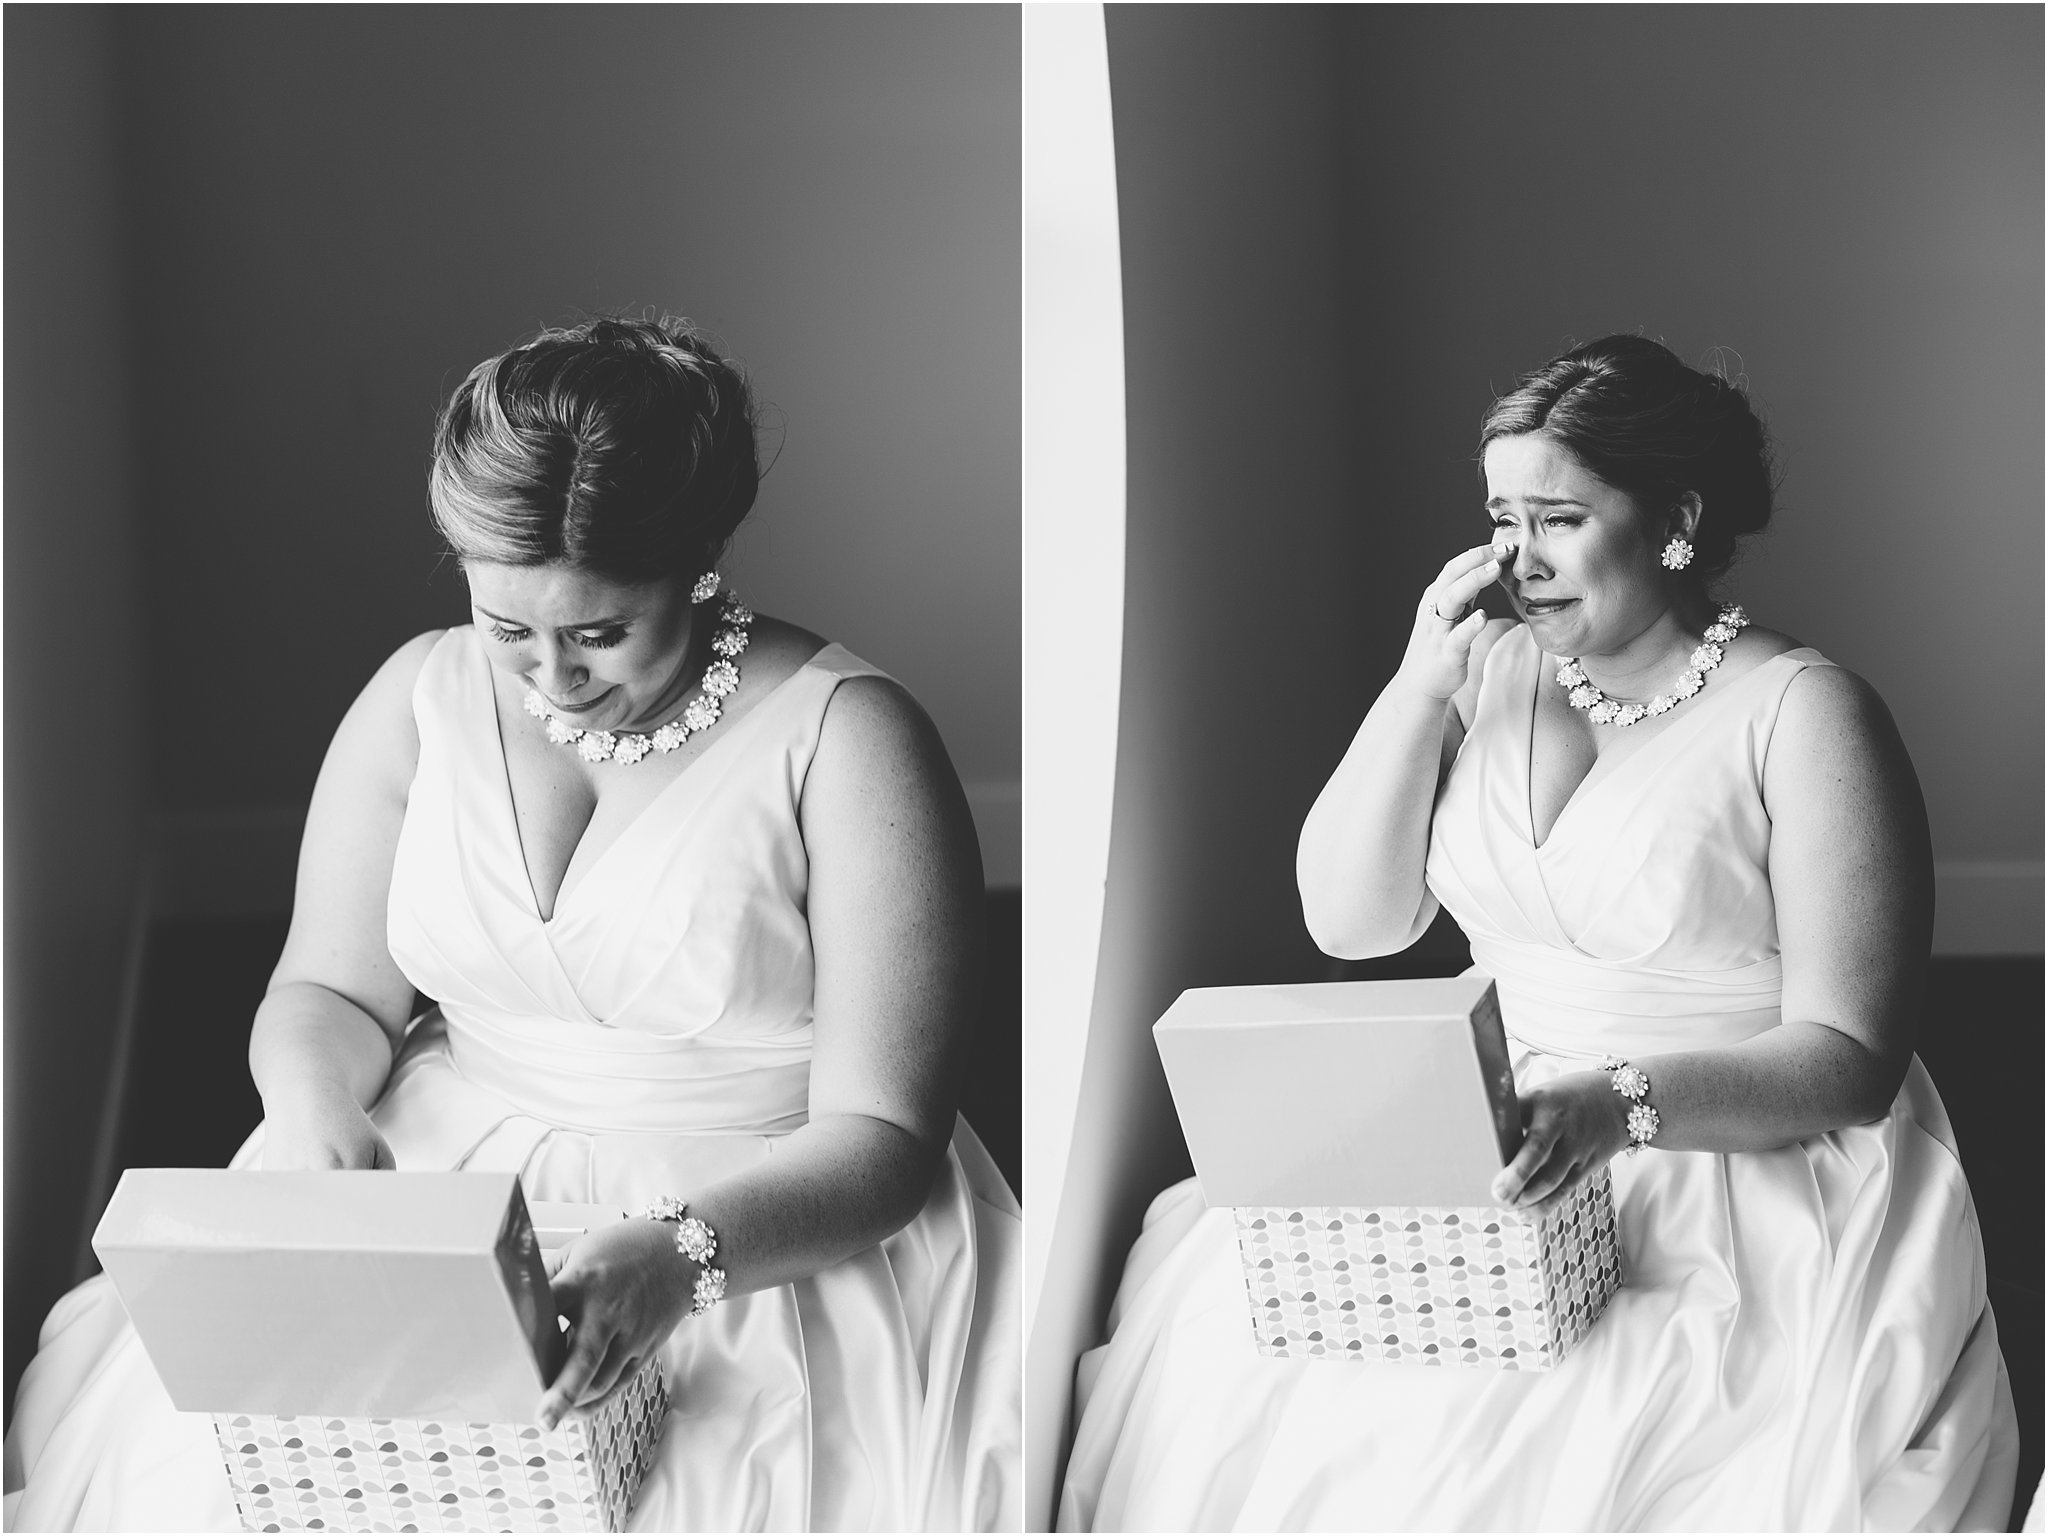 va_jessica_ryan_photography_virginia_wedding_norfolk_harrison_opera_house_norfolk_arts_district_portraits_3772